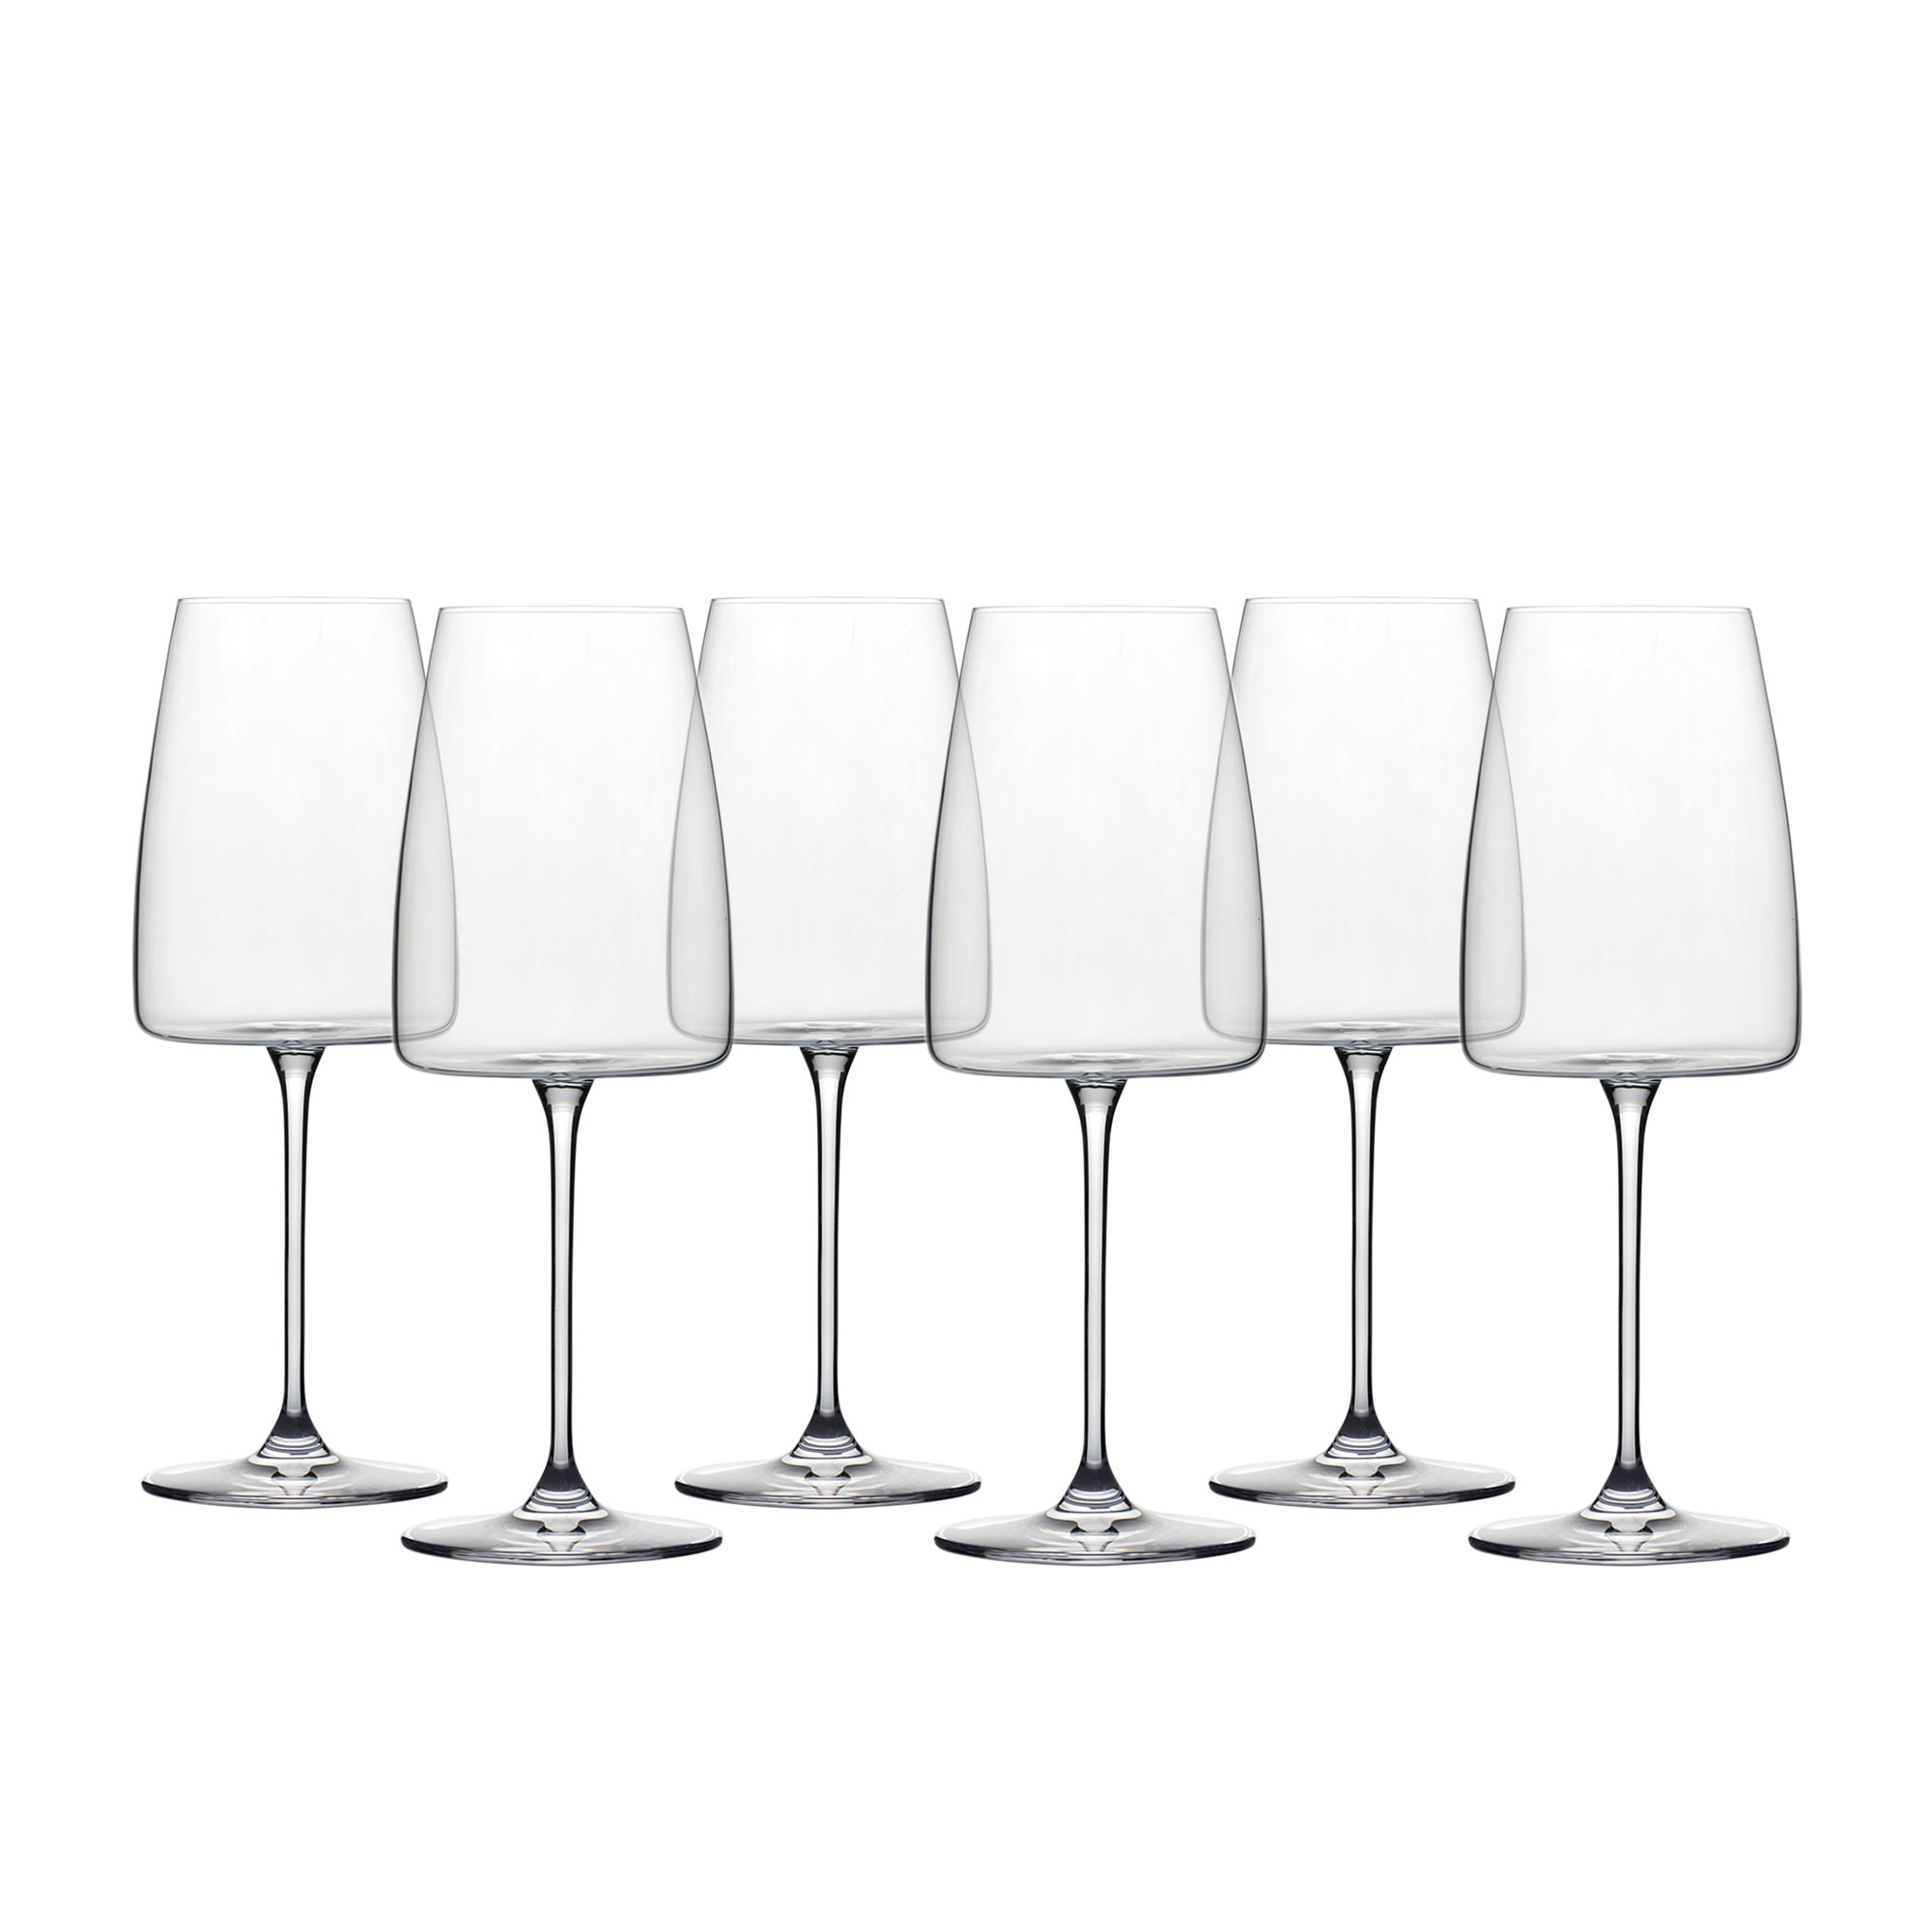 Noritake IVV Cortona 6pc Red Wine Glass Set 670ml